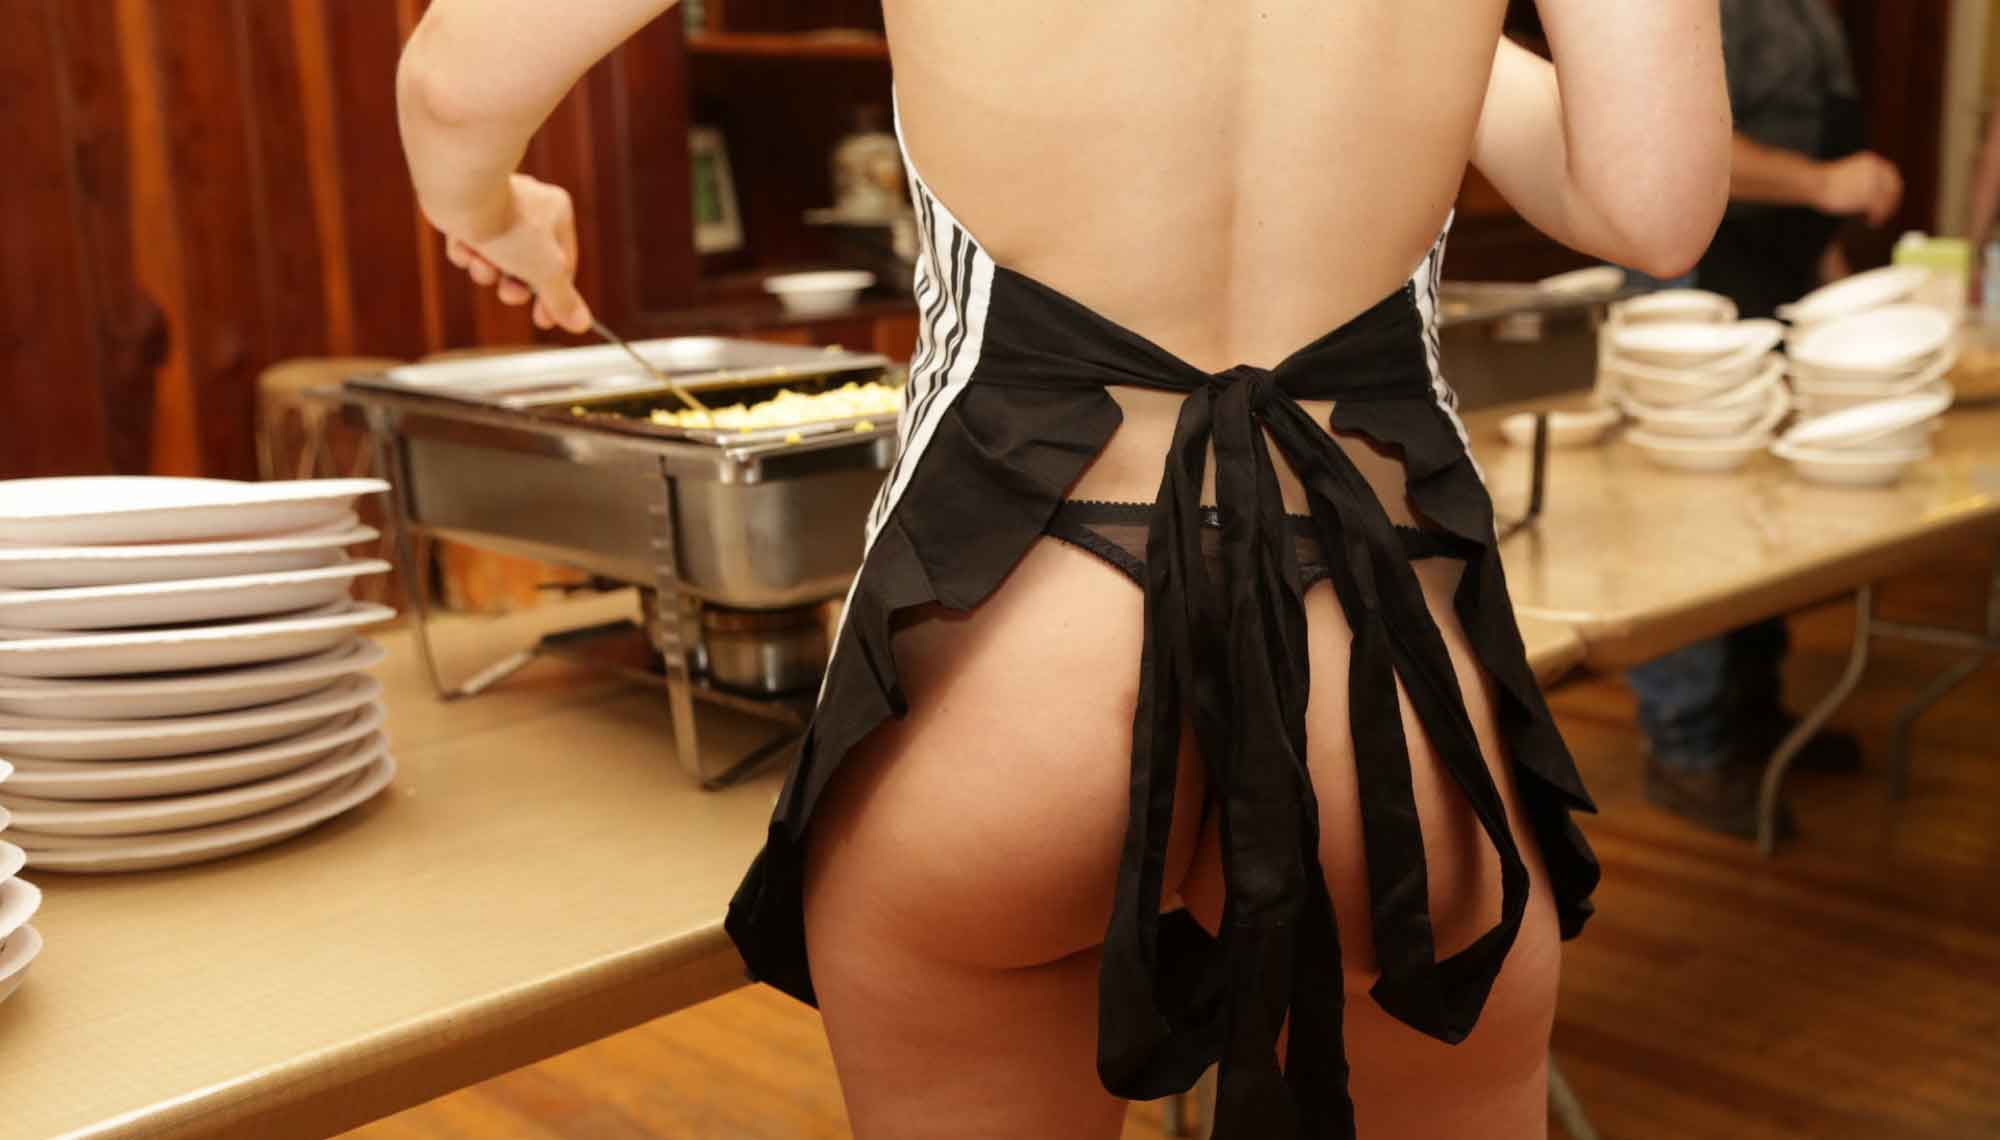 Boundless scantily clad person serving food